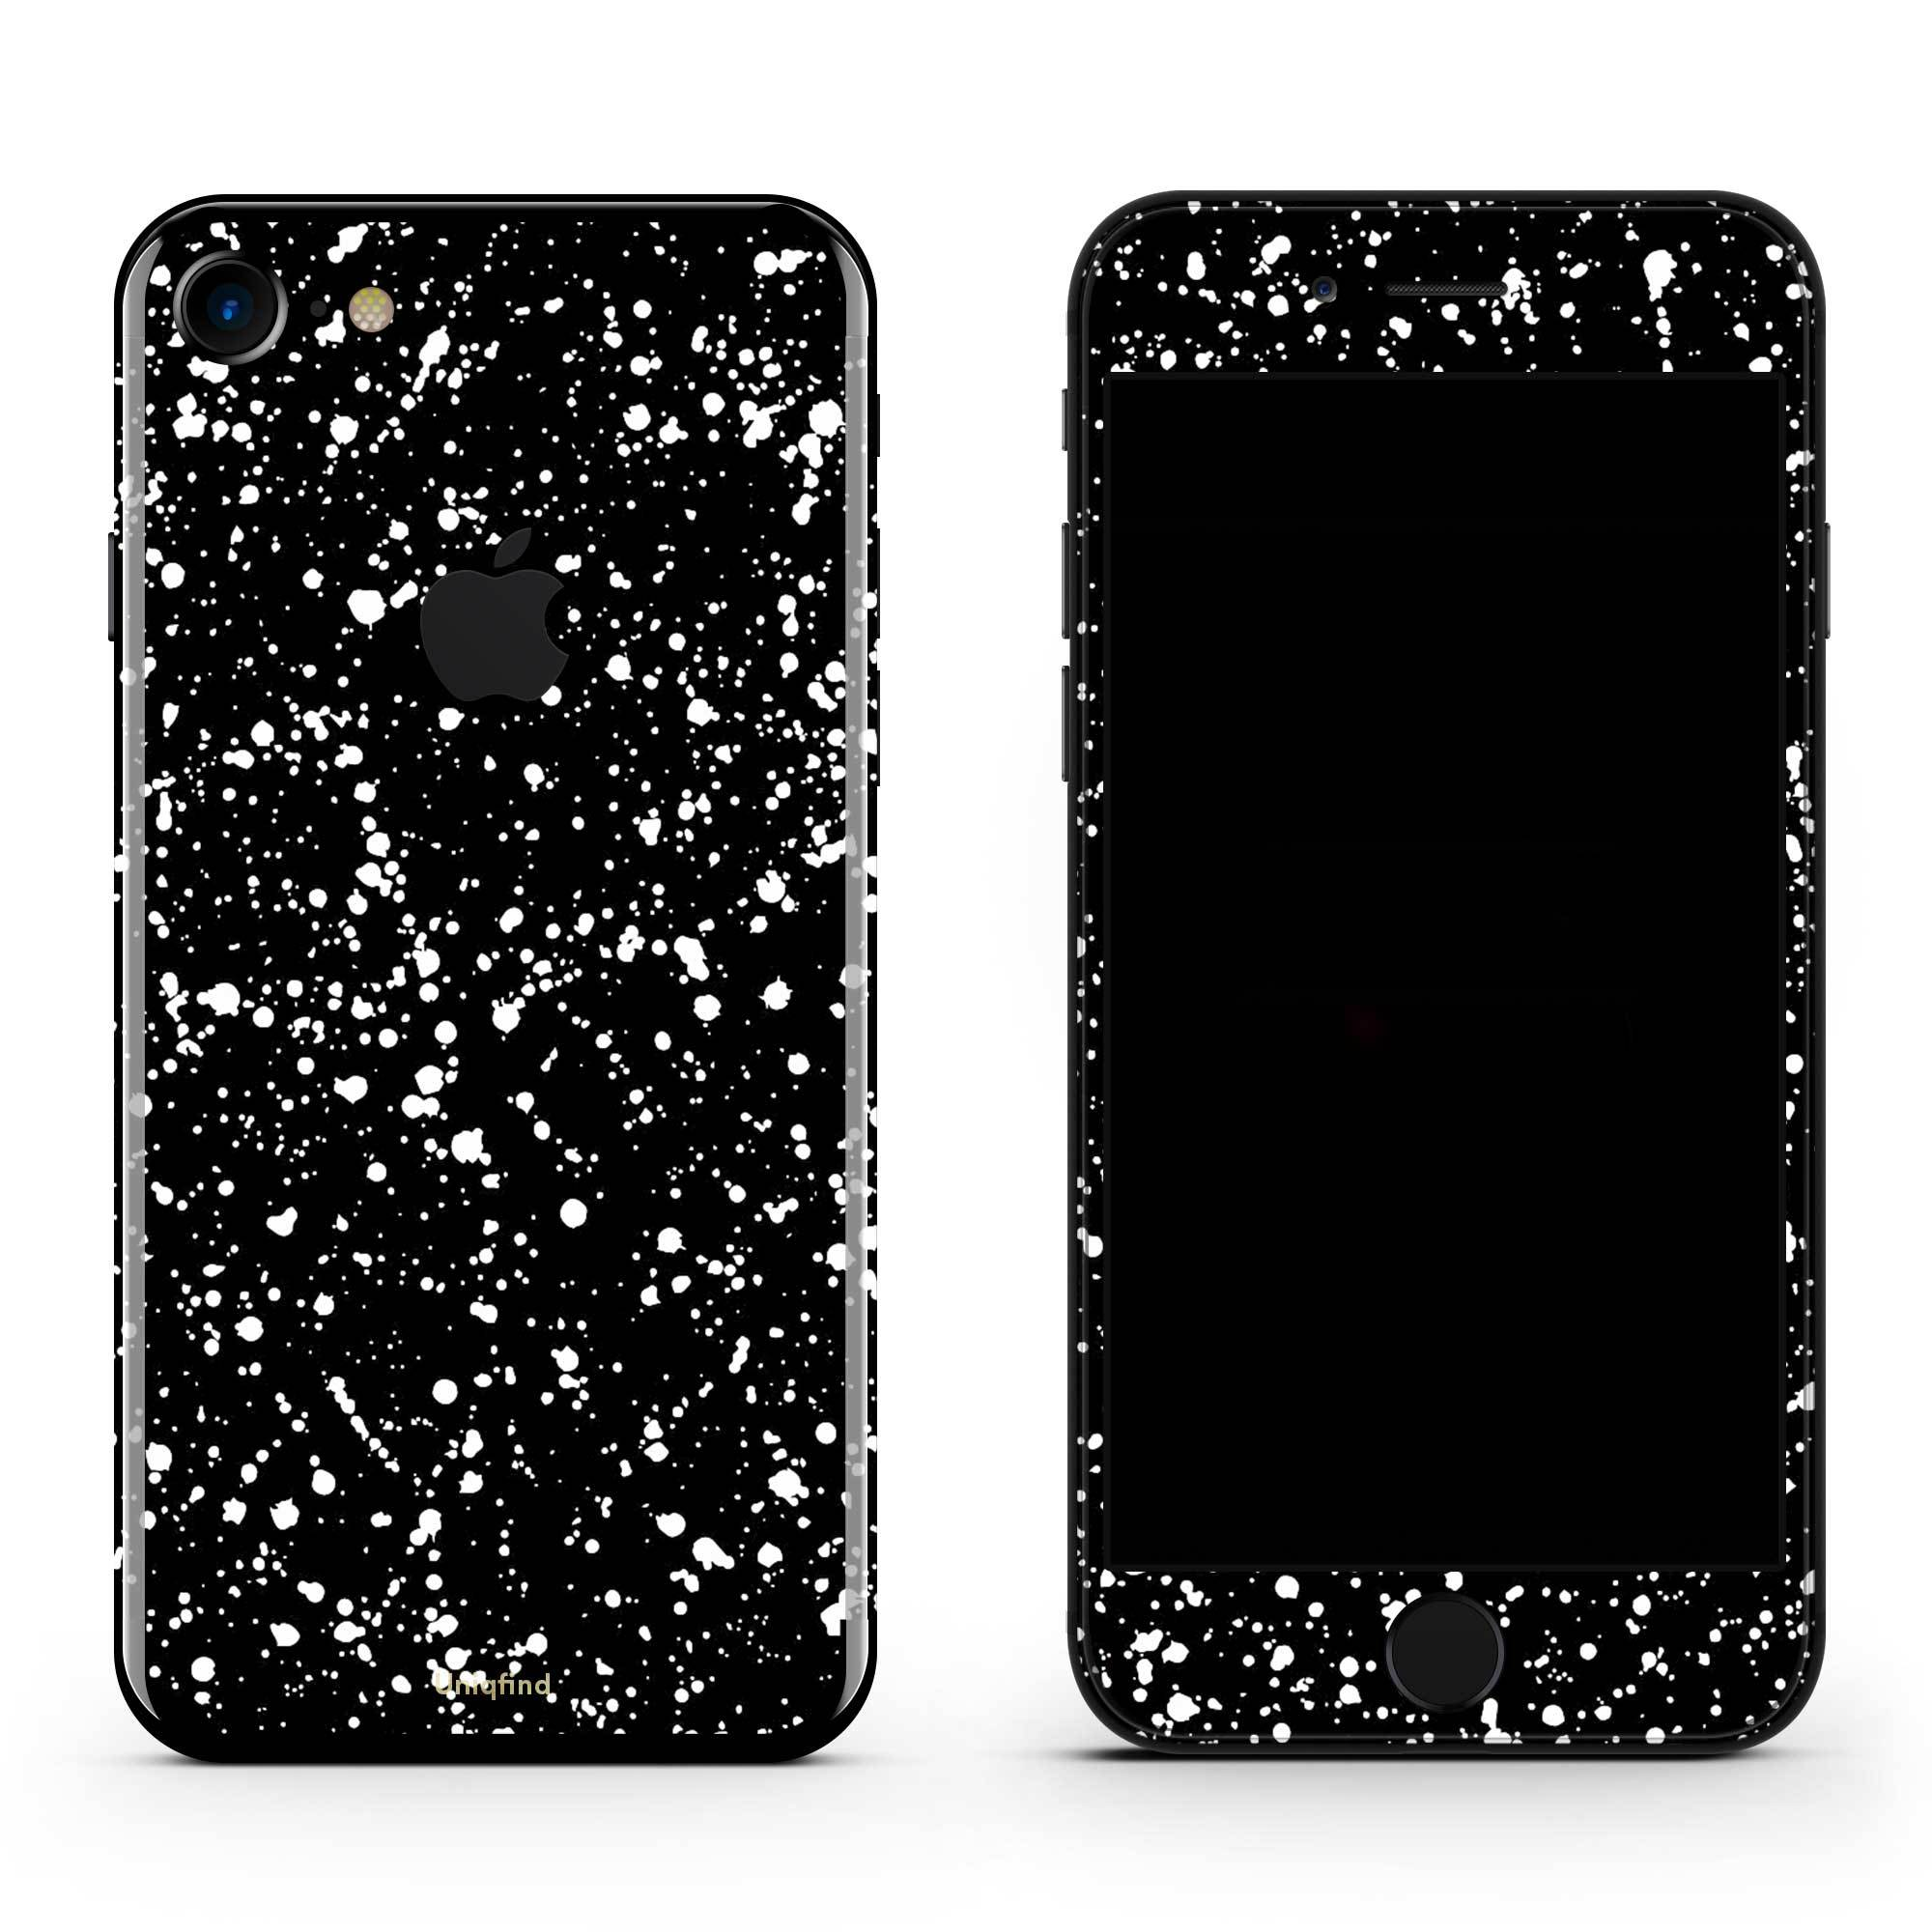 Black Speckle iPhone 6/6S Skin + Case